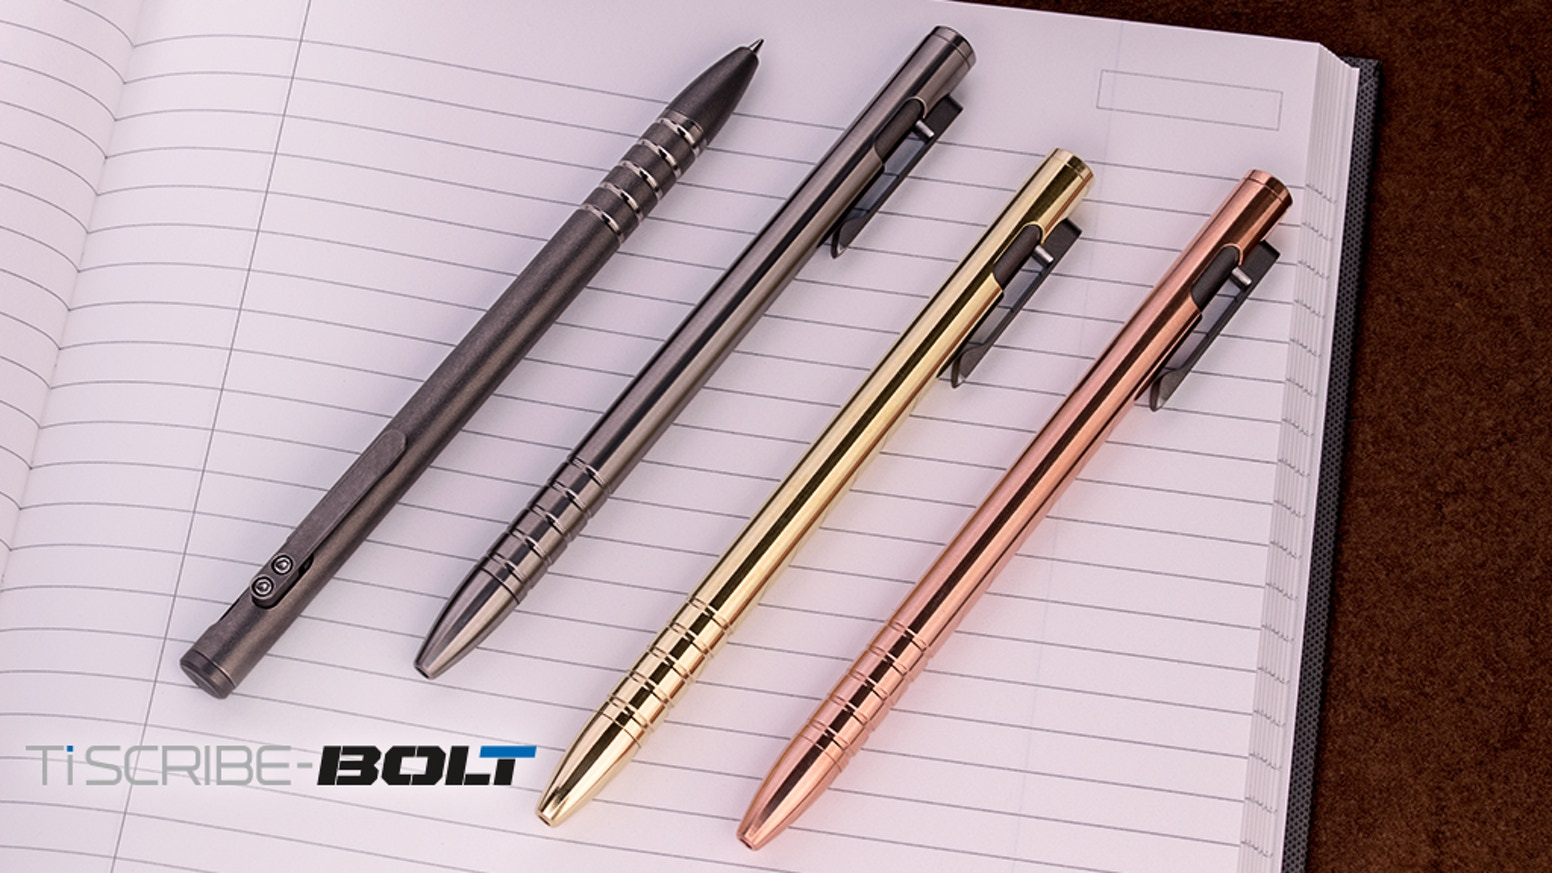 An addicting EDC pen with a unique bolt-action mechanism. The TiScribe-Bolt